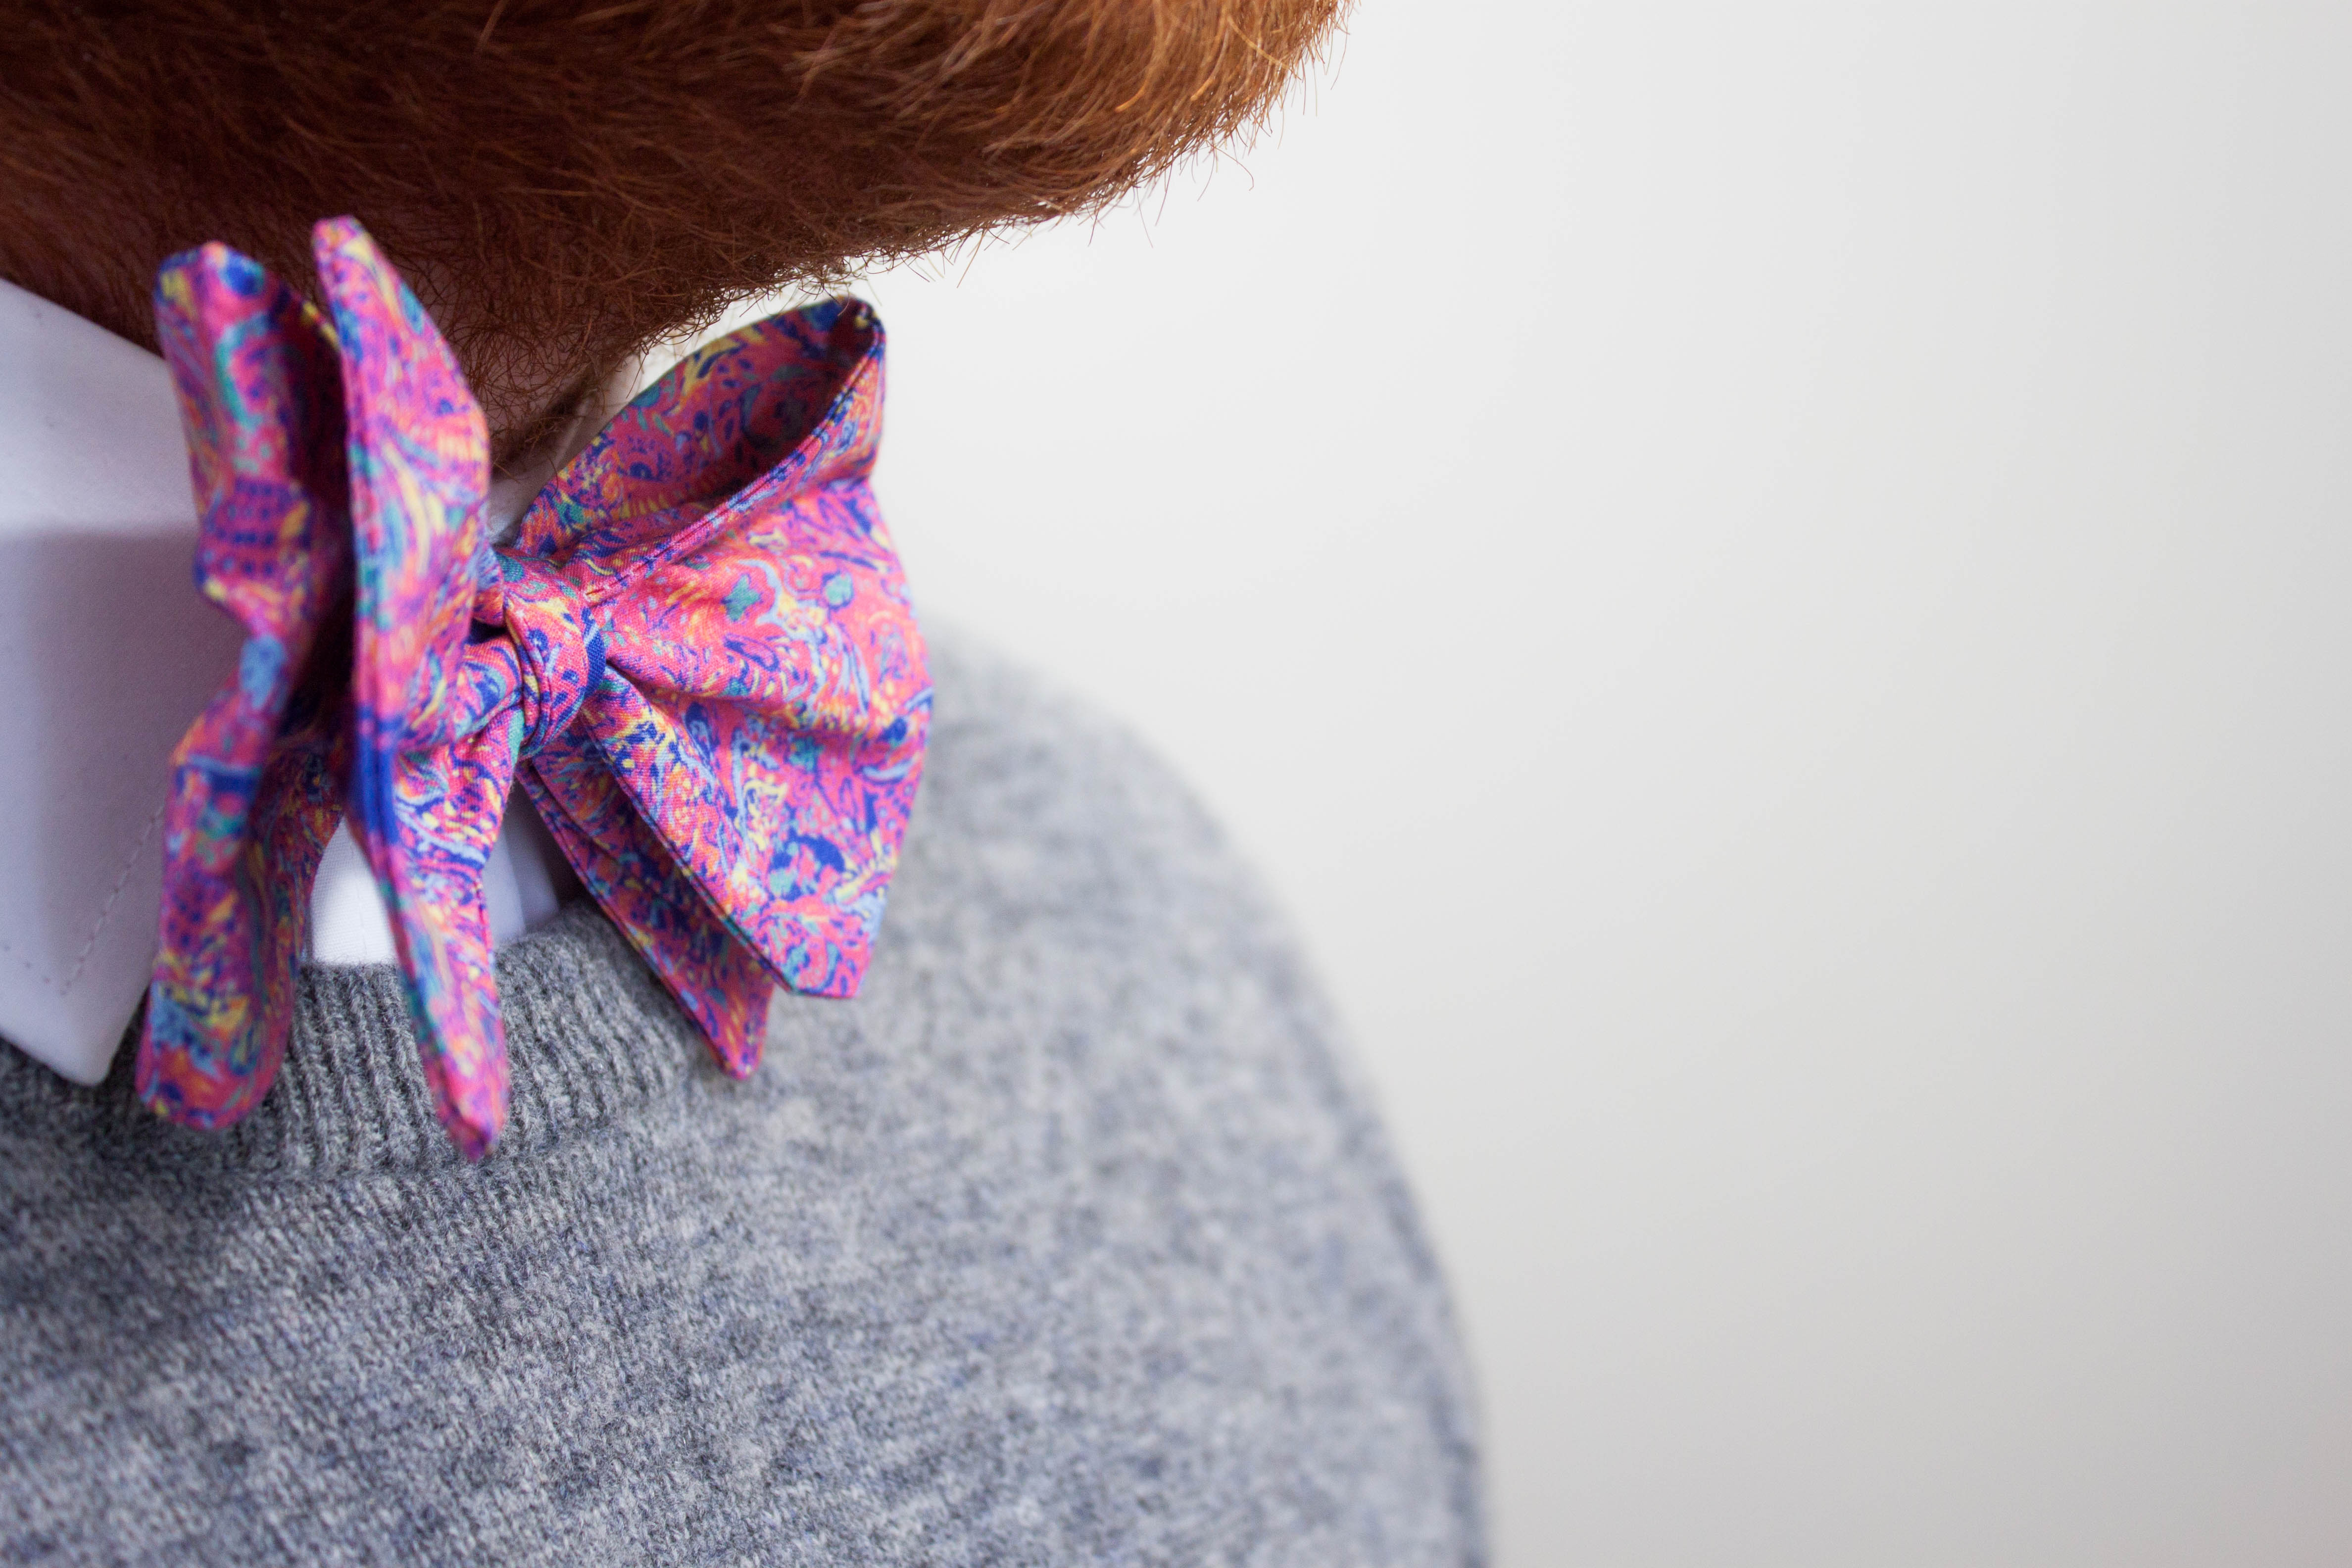 paisley, pattern,bowtie,bow,tie,print,design,josef mcfadden,beard,handmade in scotland,glasgow,renfrewshire,edinburgh,scotland,mens fashion,men,menswear,mens style,dapper,mens accessories,wedding bow ties